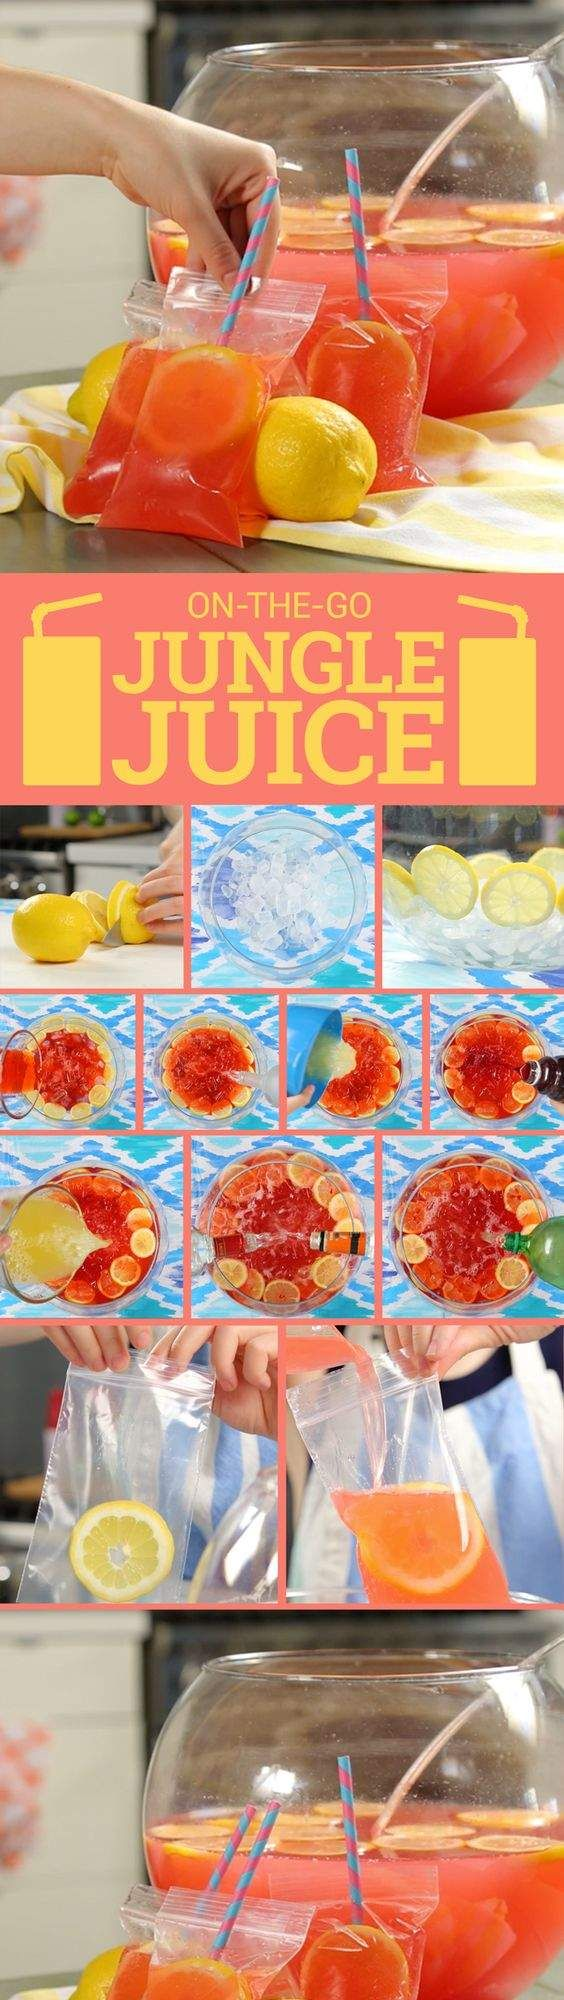 Booze Anywhere All Summer Long With This DIY Jungle Juice Pouch